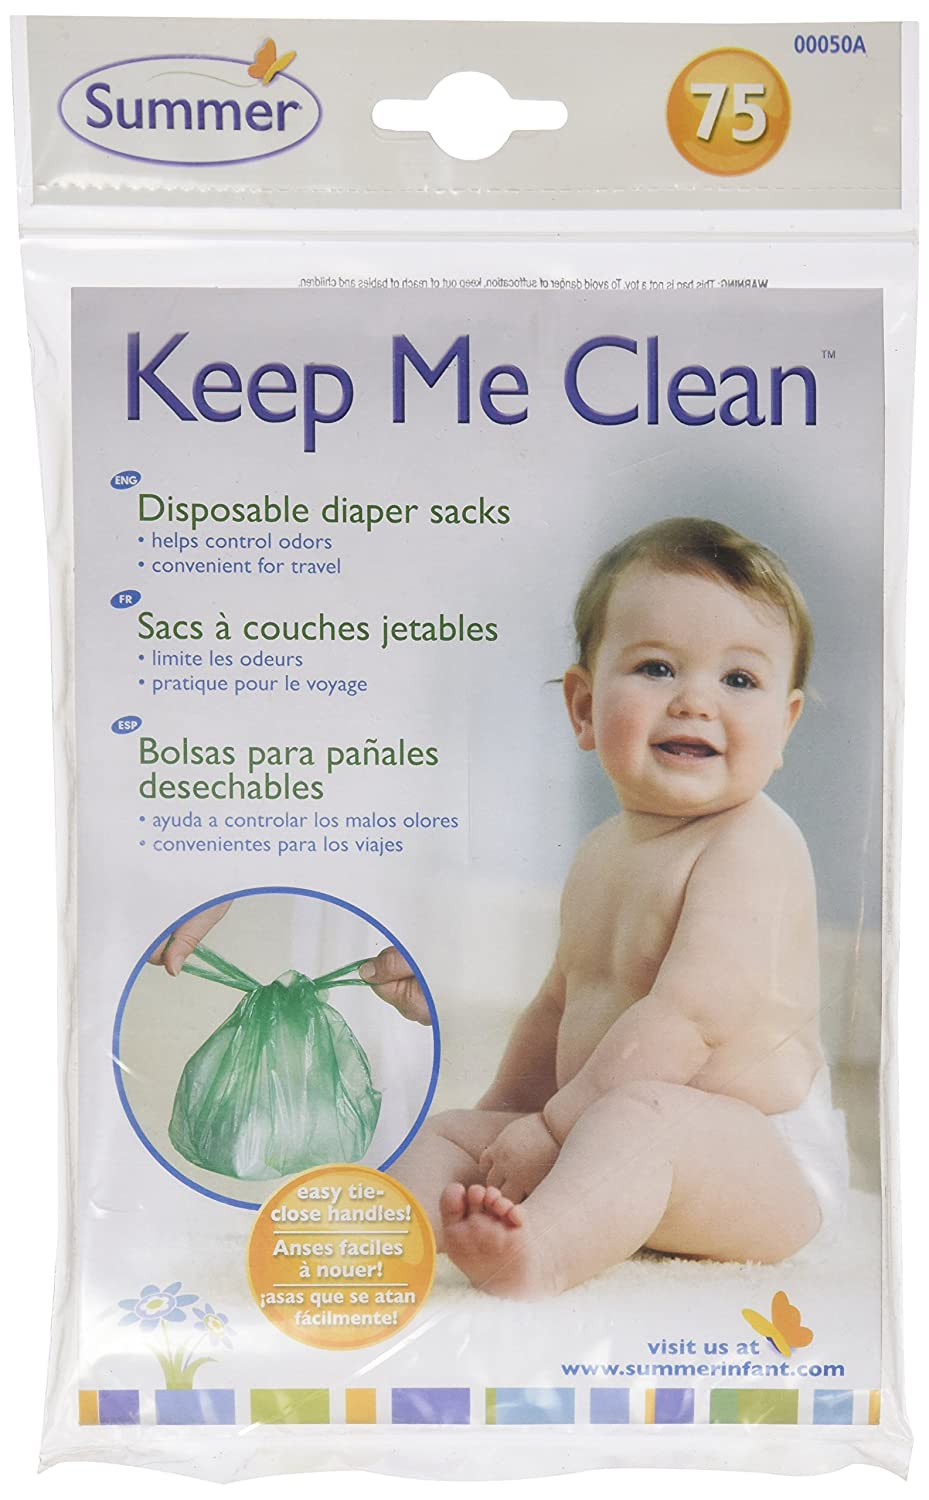 Summer Infant Keep Me Clean Disposable Diaper Sacks Travel Pack, 75-Count Inc. 00050